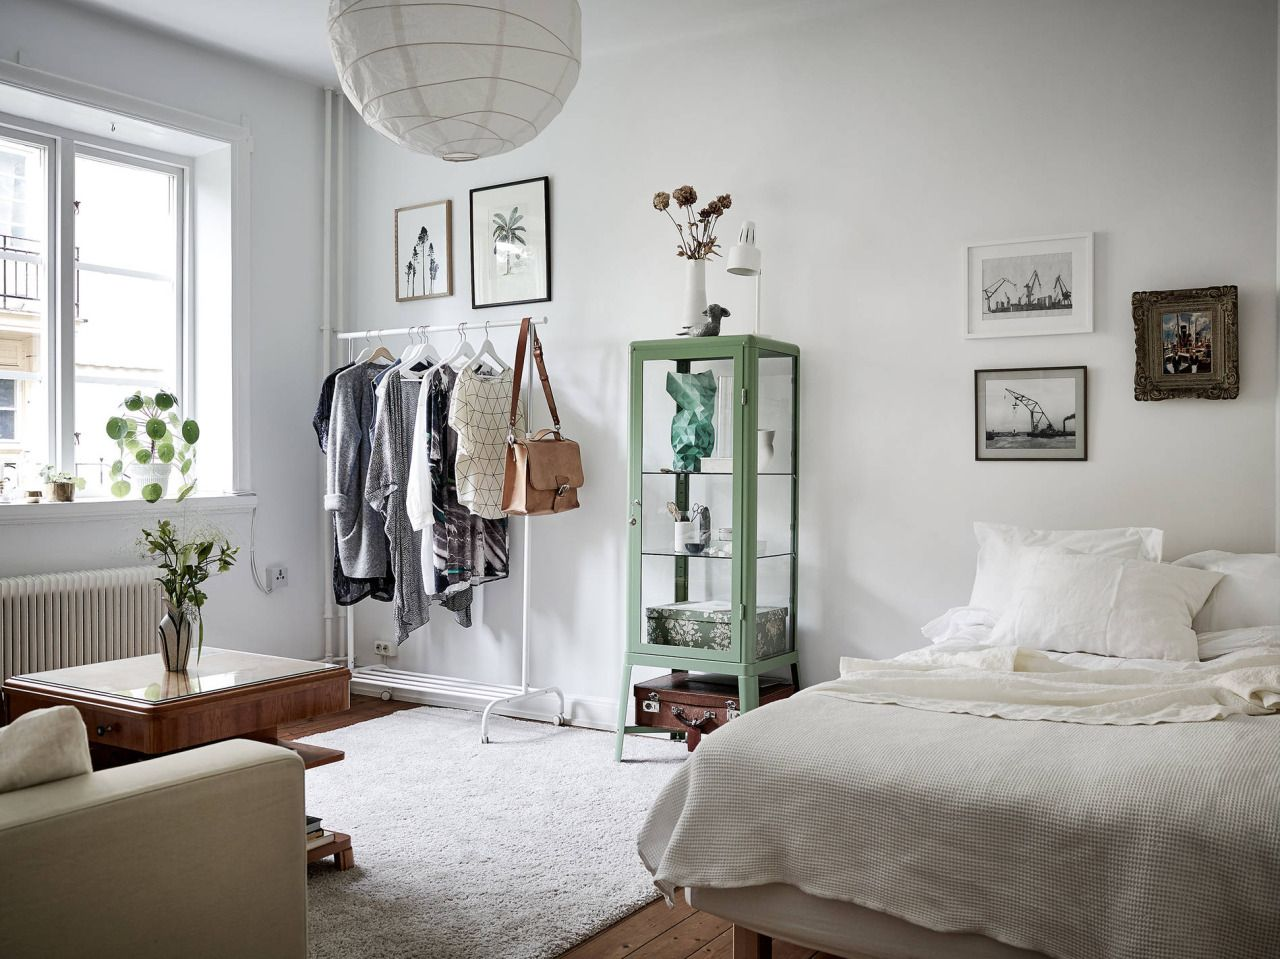 Schlafzimmer Ideen Studenten Studio Apartment With Vintage Touch Bedroom Dreams